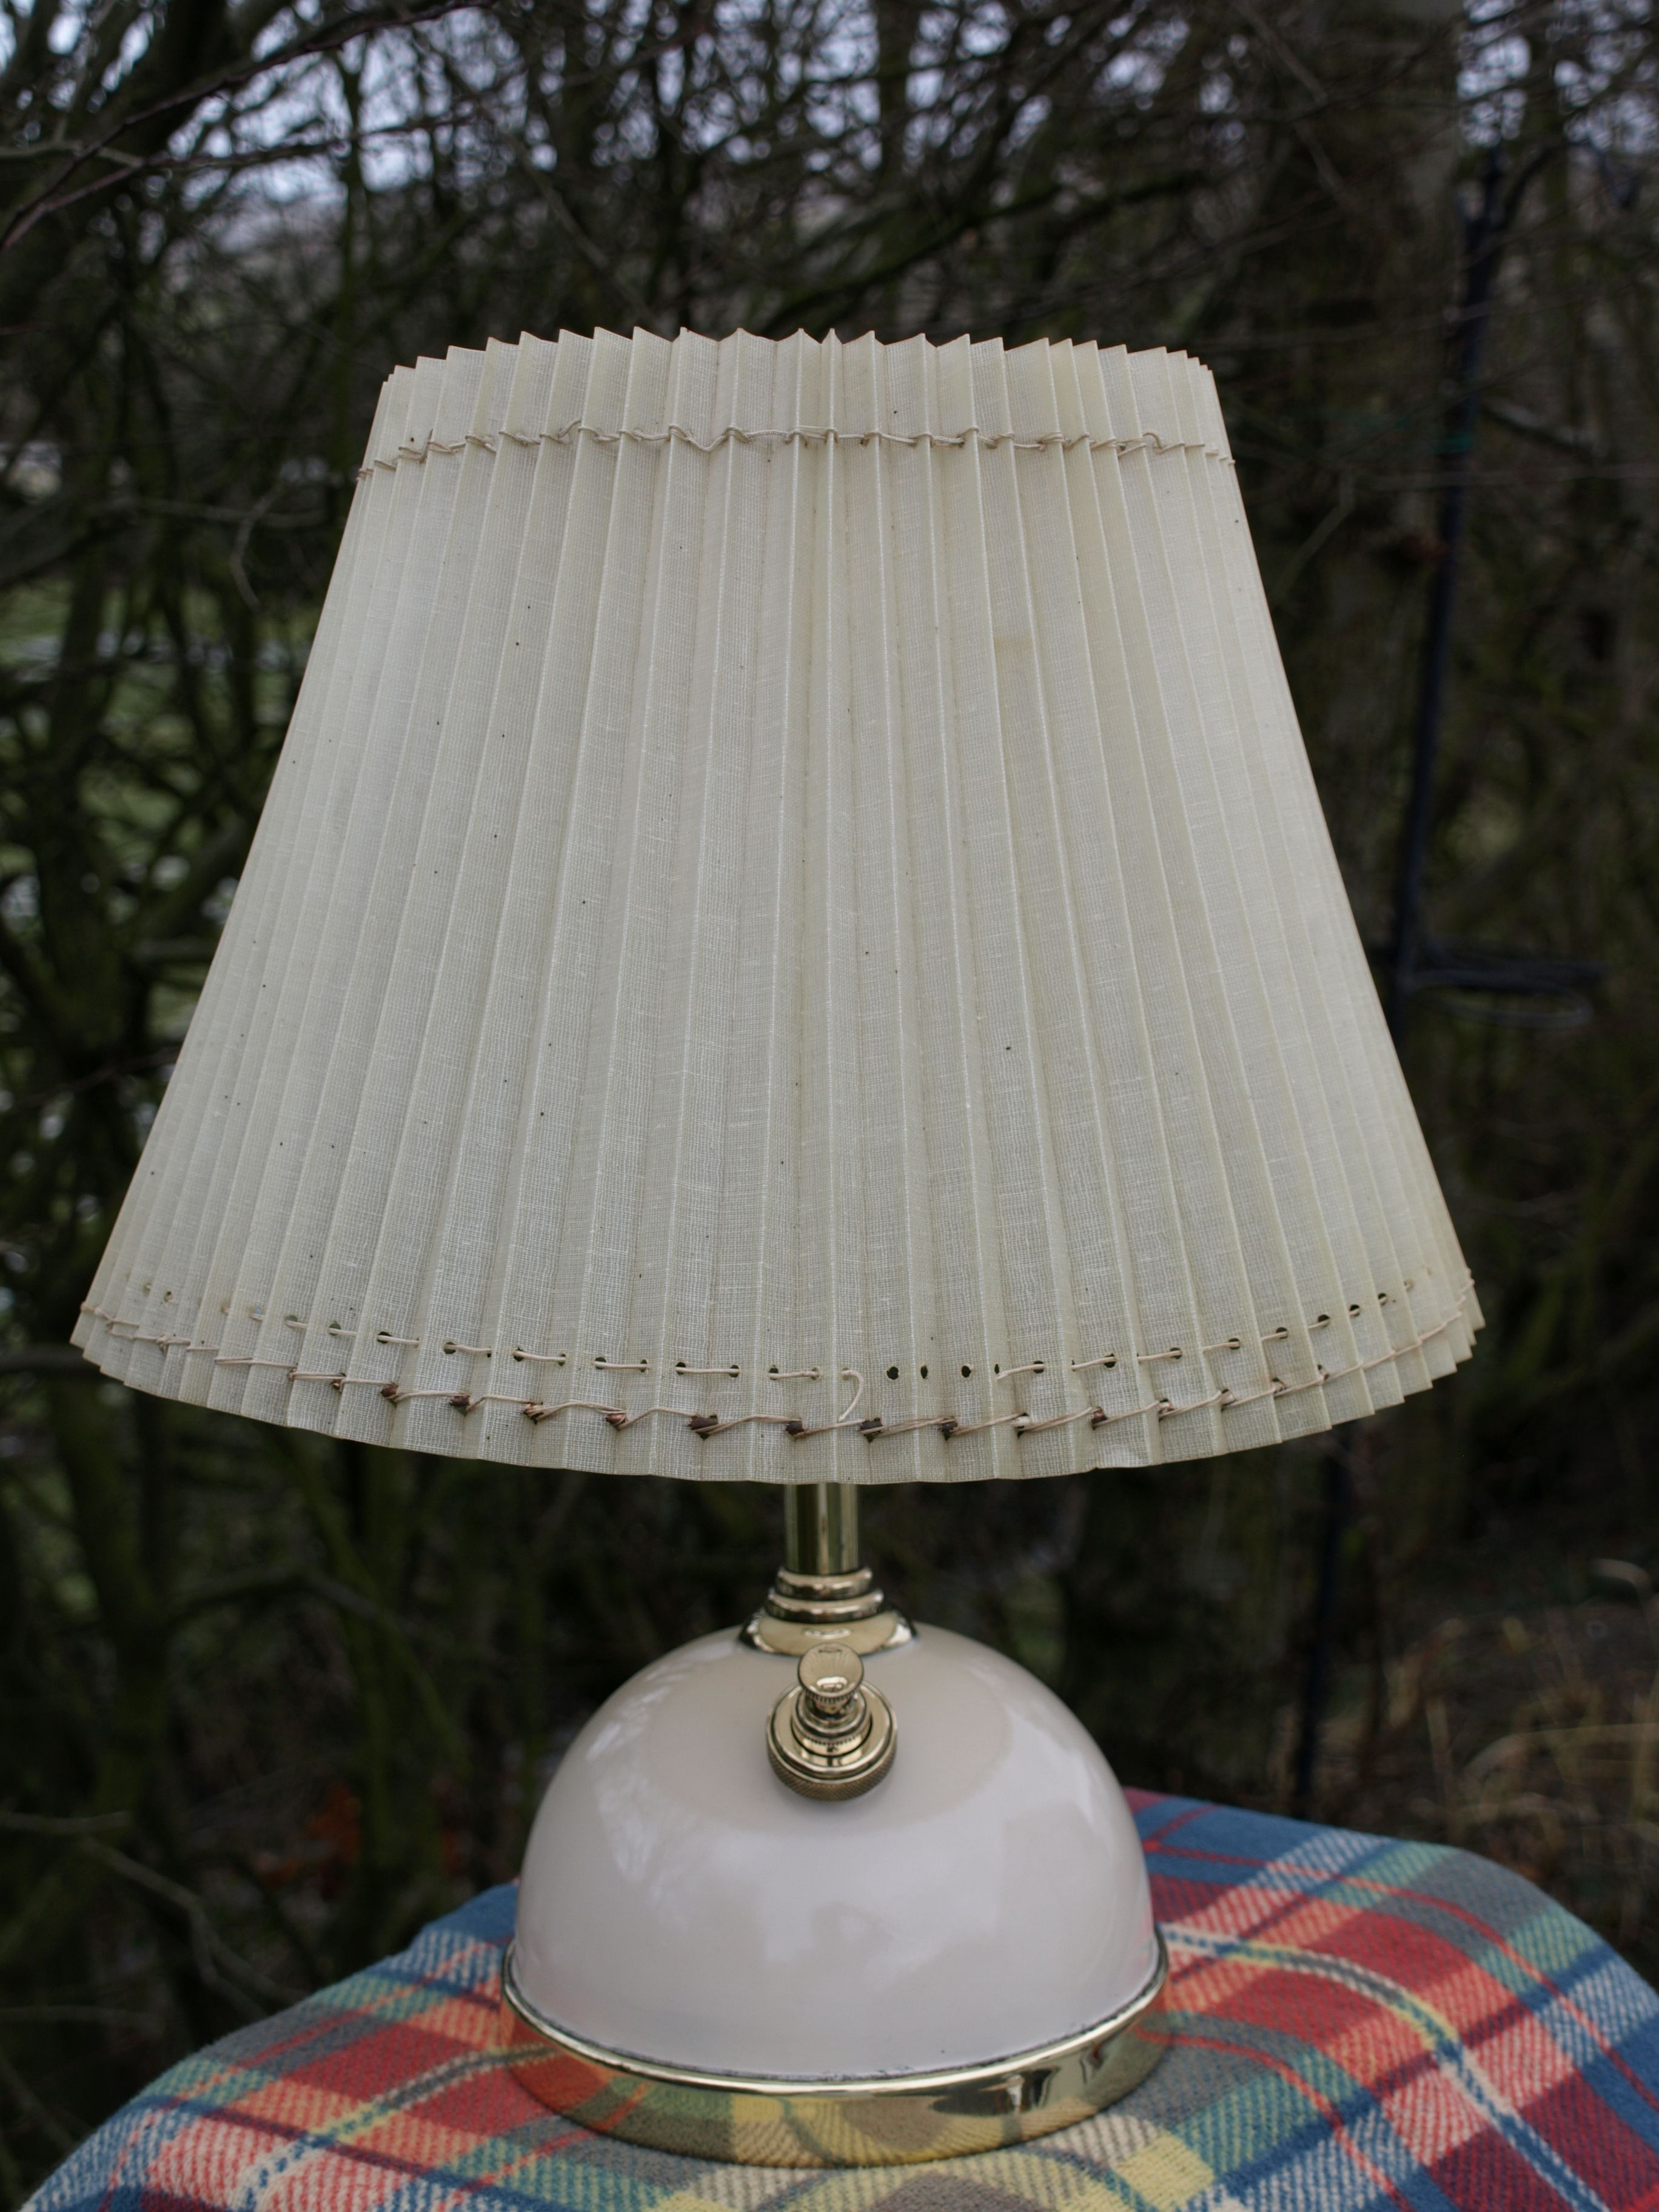 Dating tilley lamps